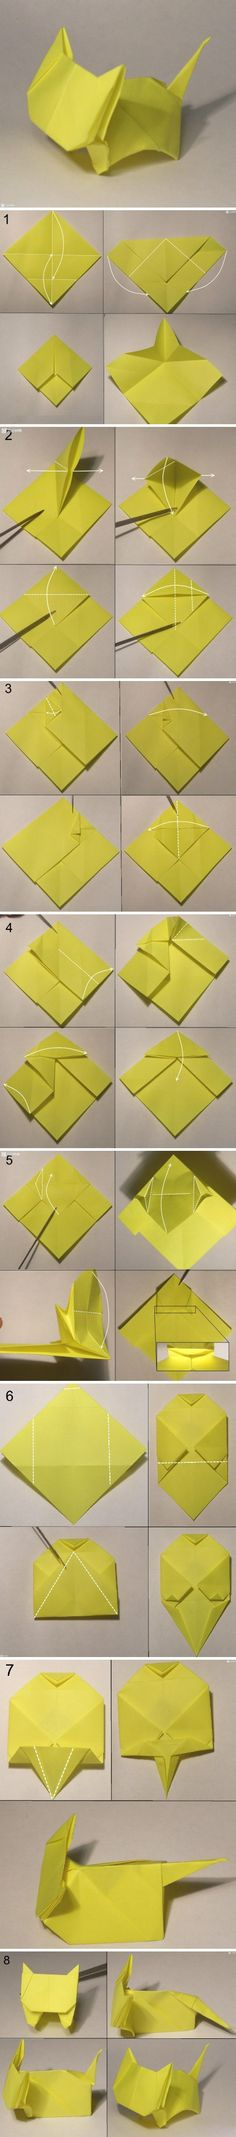 Kitty cat origami